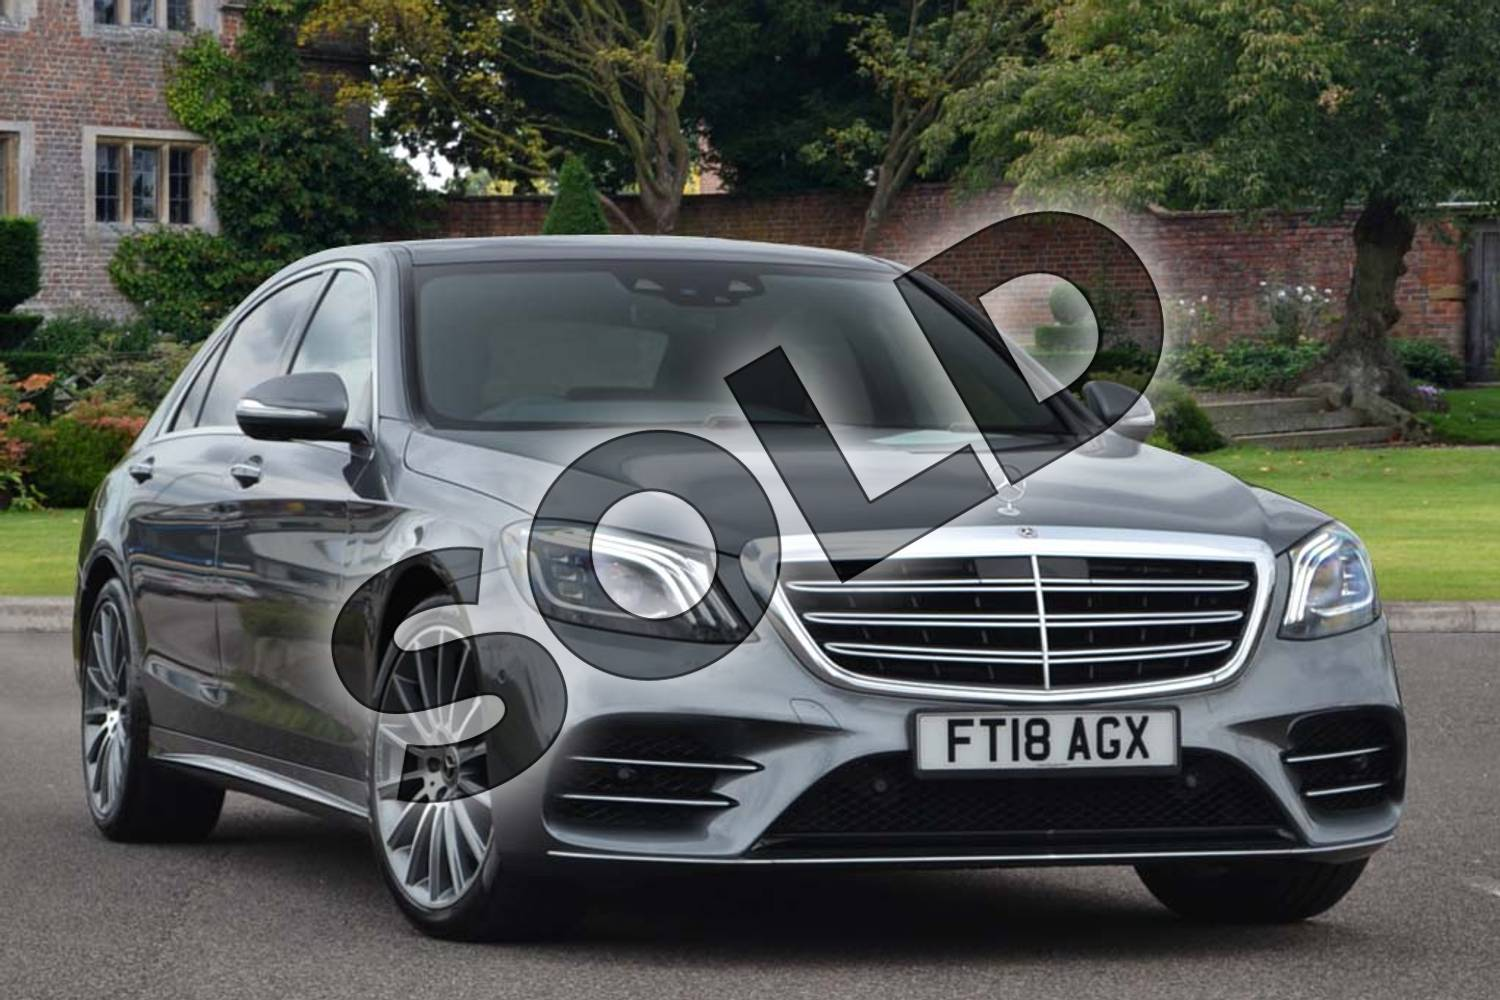 2018 Mercedes-Benz S Class Diesel Saloon Diesel S350d L AMG Line Premium 4dr 9G-Tronic in Selenite Grey metallic at Mercedes-Benz of Lincoln